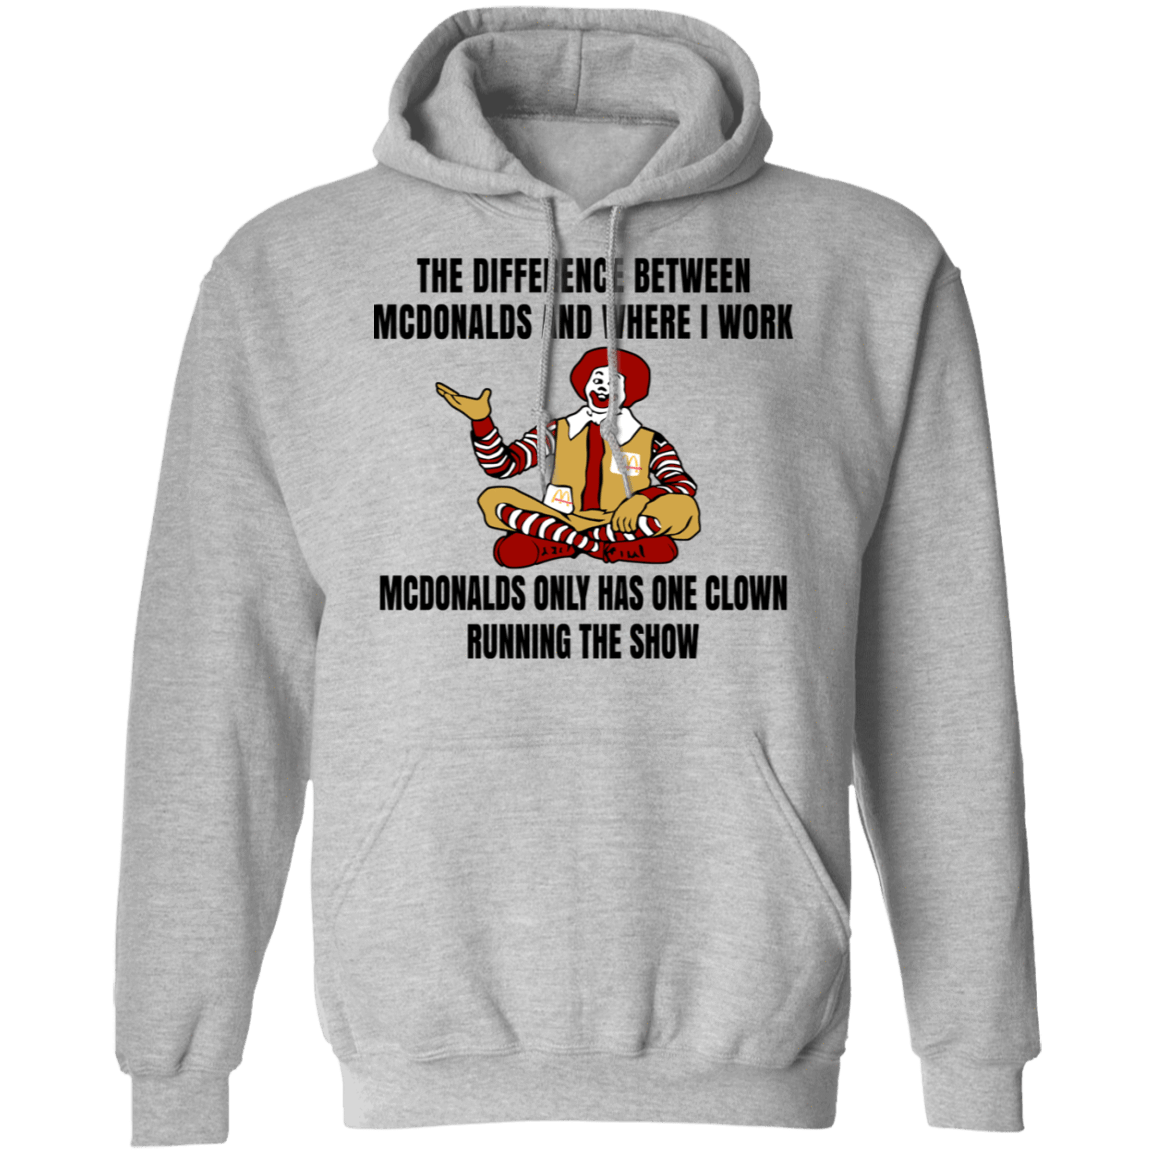 The Difference Between McDonalds And Where I Work McDonalds Only Has One Clown Running The Show T-Shirts, Hoodies, Tank 541-4741-79763381-23111 - Tee Ript